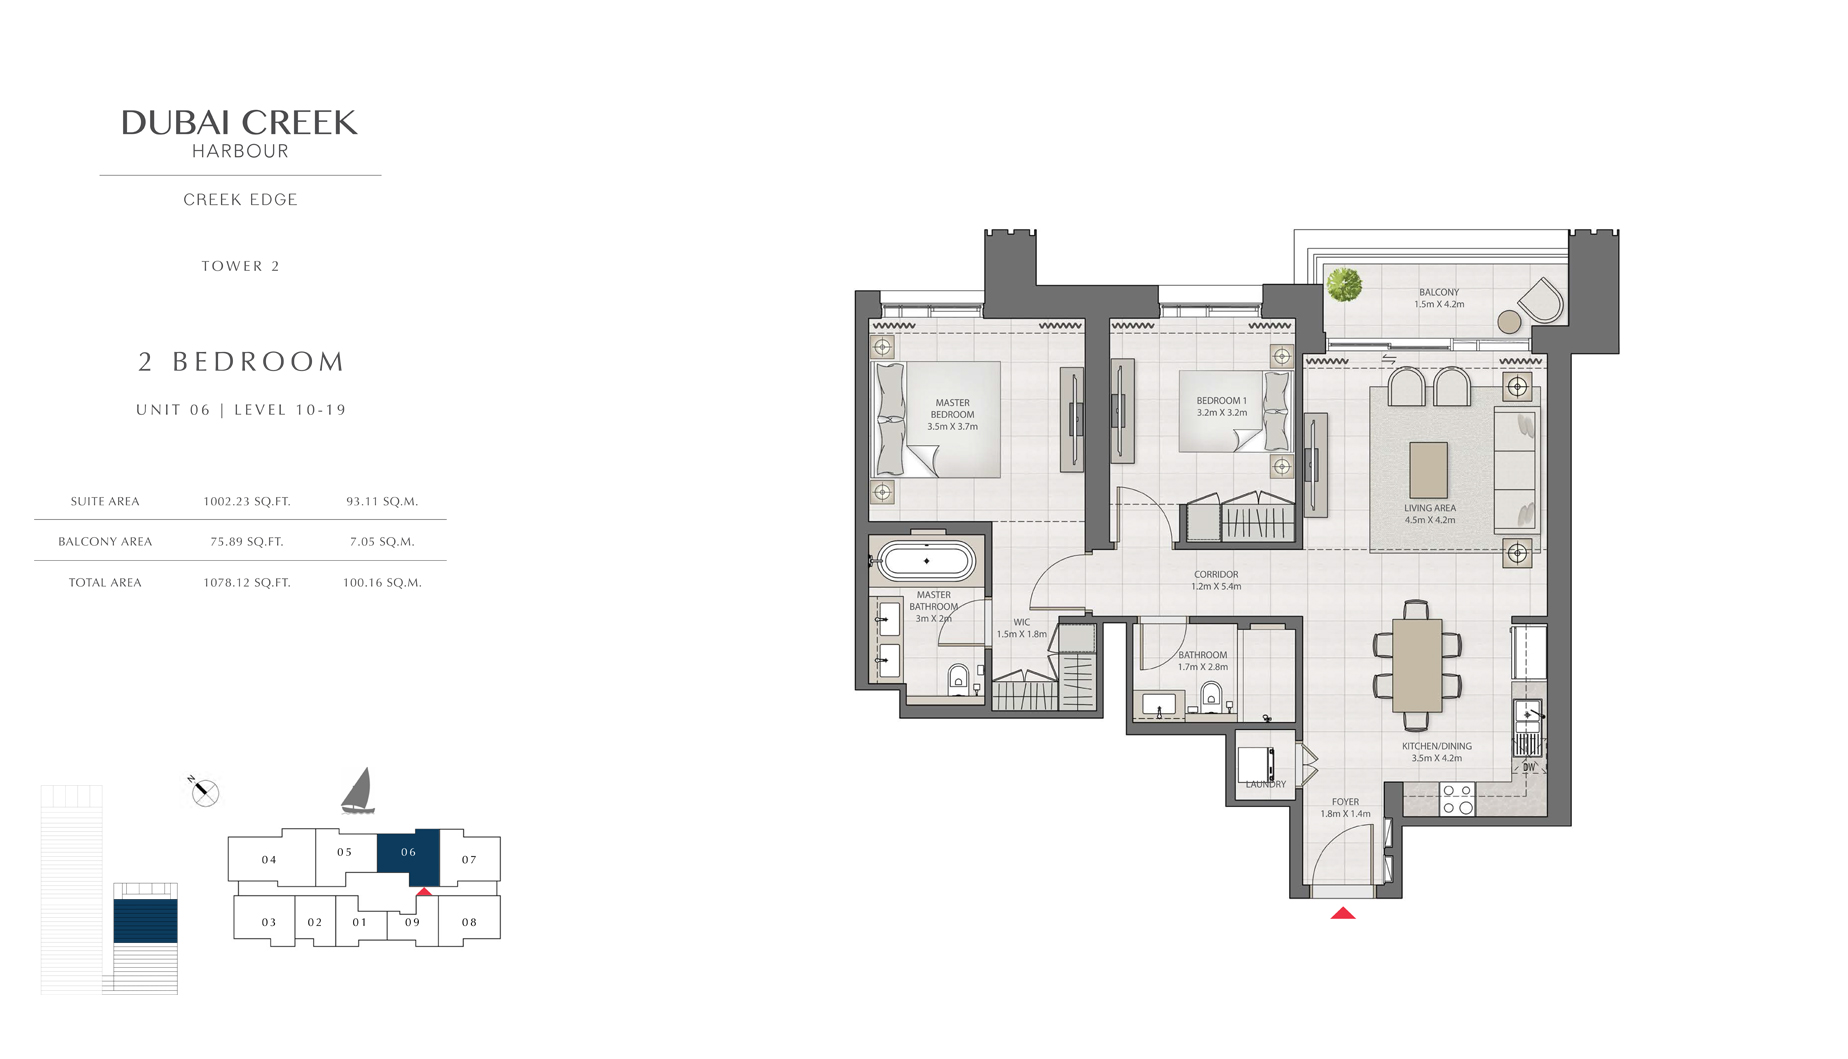 2 Bedroom Tower 2 Unit 06 Level 10-19 Size 1078 sq.ft